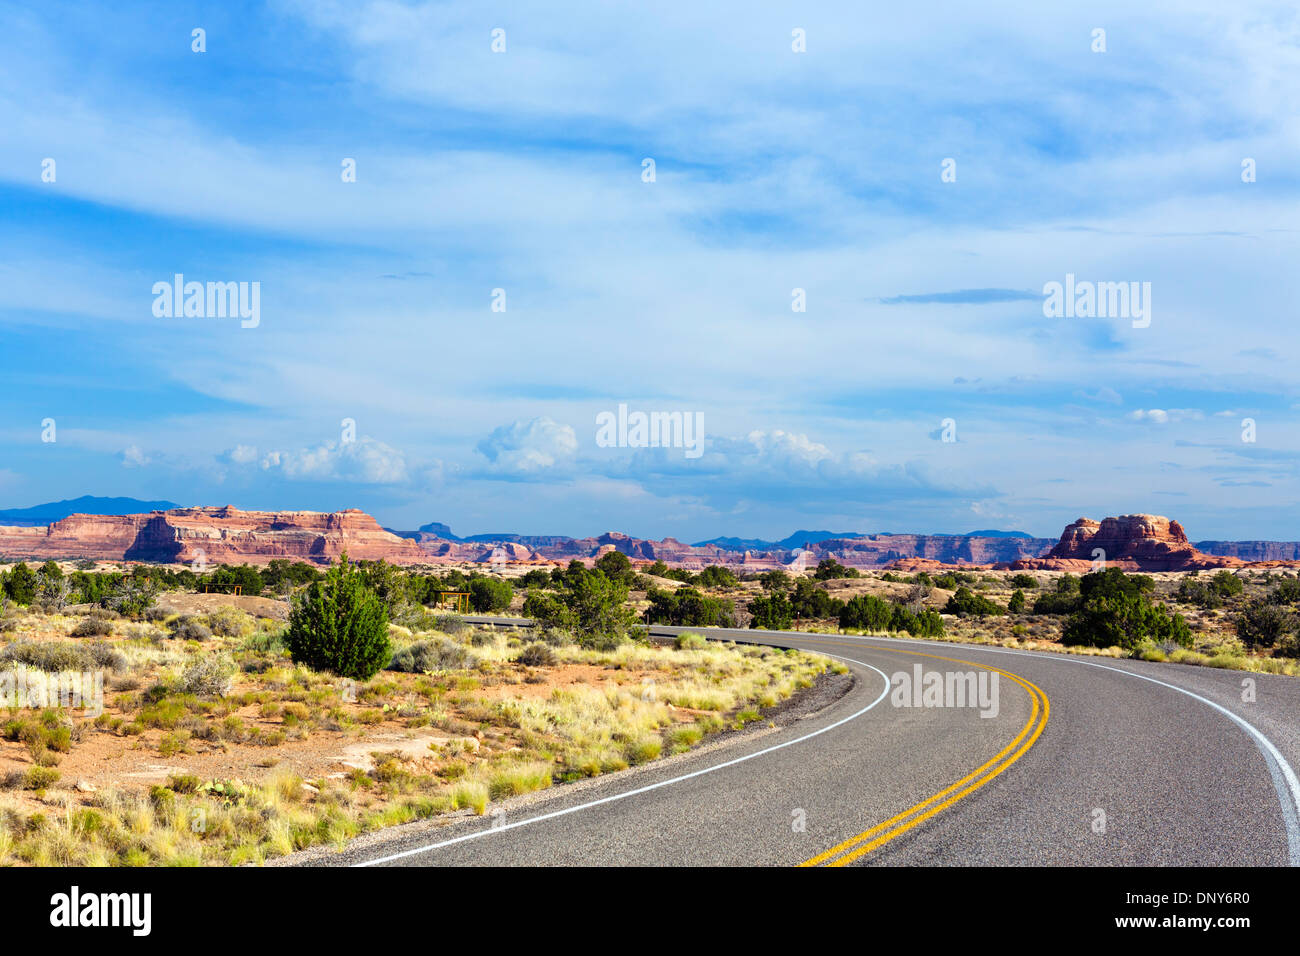 UT 211 scenic road in the Needles section of Canyonlands National Park, Utah, USA - Stock Image